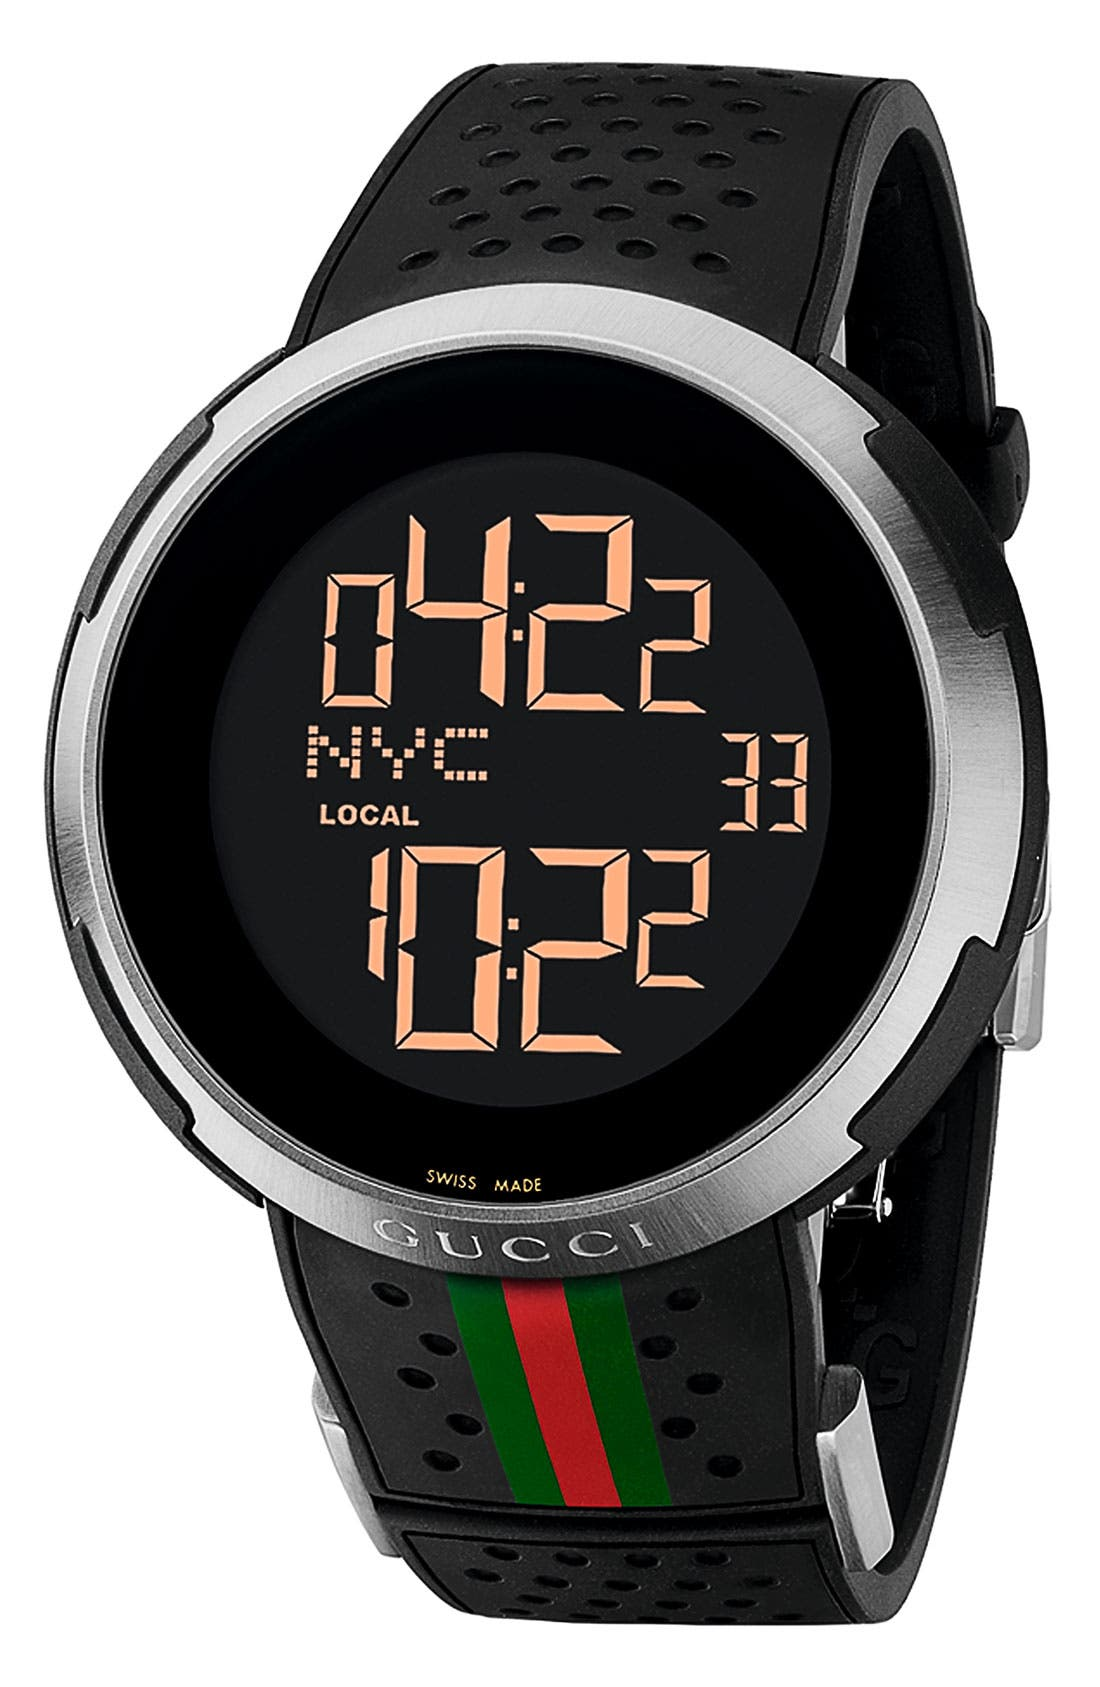 GUCCI, 'I Gucci' Rubber Strap Watch, 49mm, Main thumbnail 1, color, 001